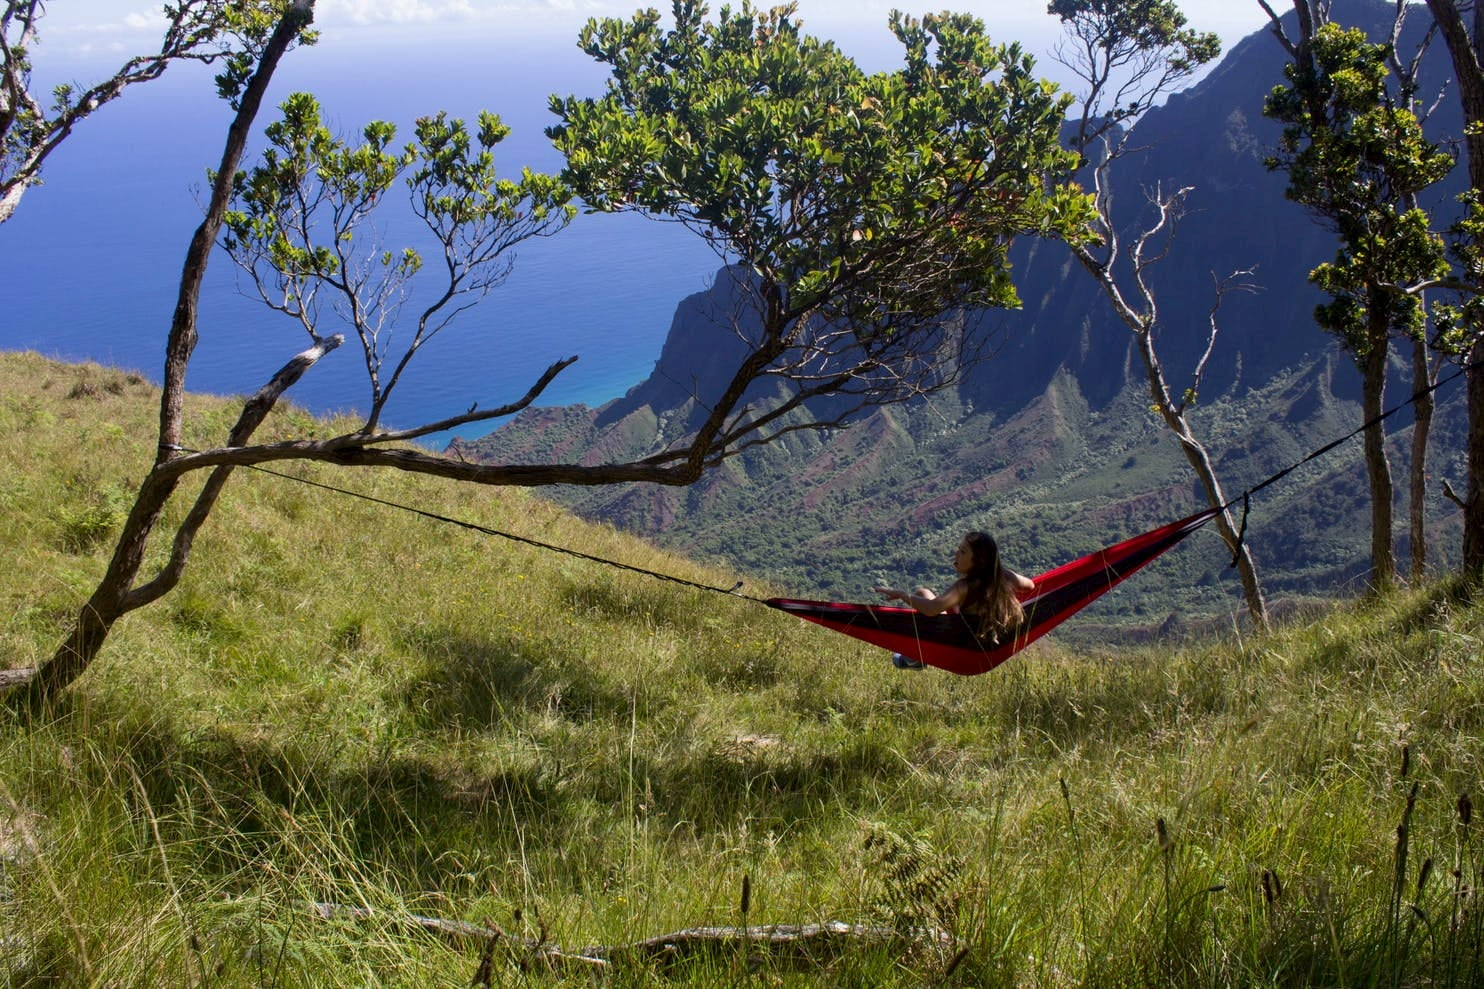 Women sitting in a hammock between two tree branches in field overlooking the ocean below.